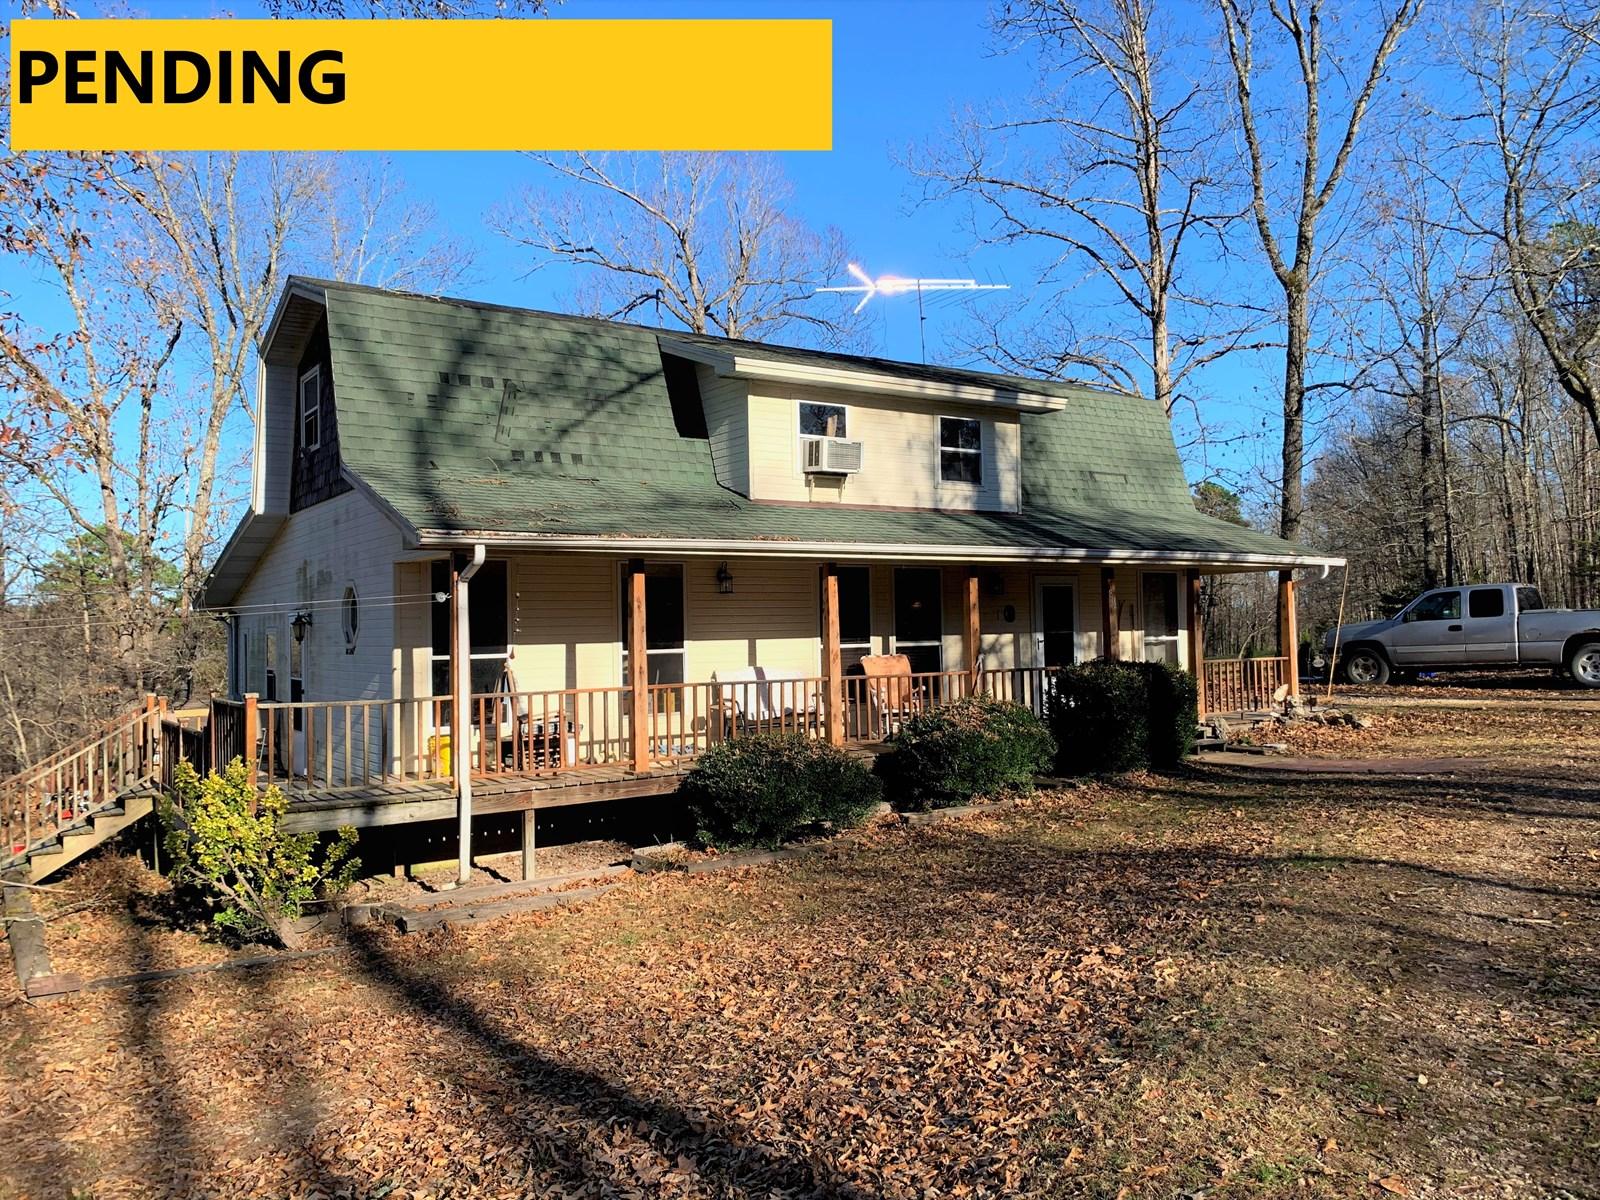 VERY WELL-BUILT / 2-STORY / CRAFTSMAN-STYLE HOME ON 9 ACRES